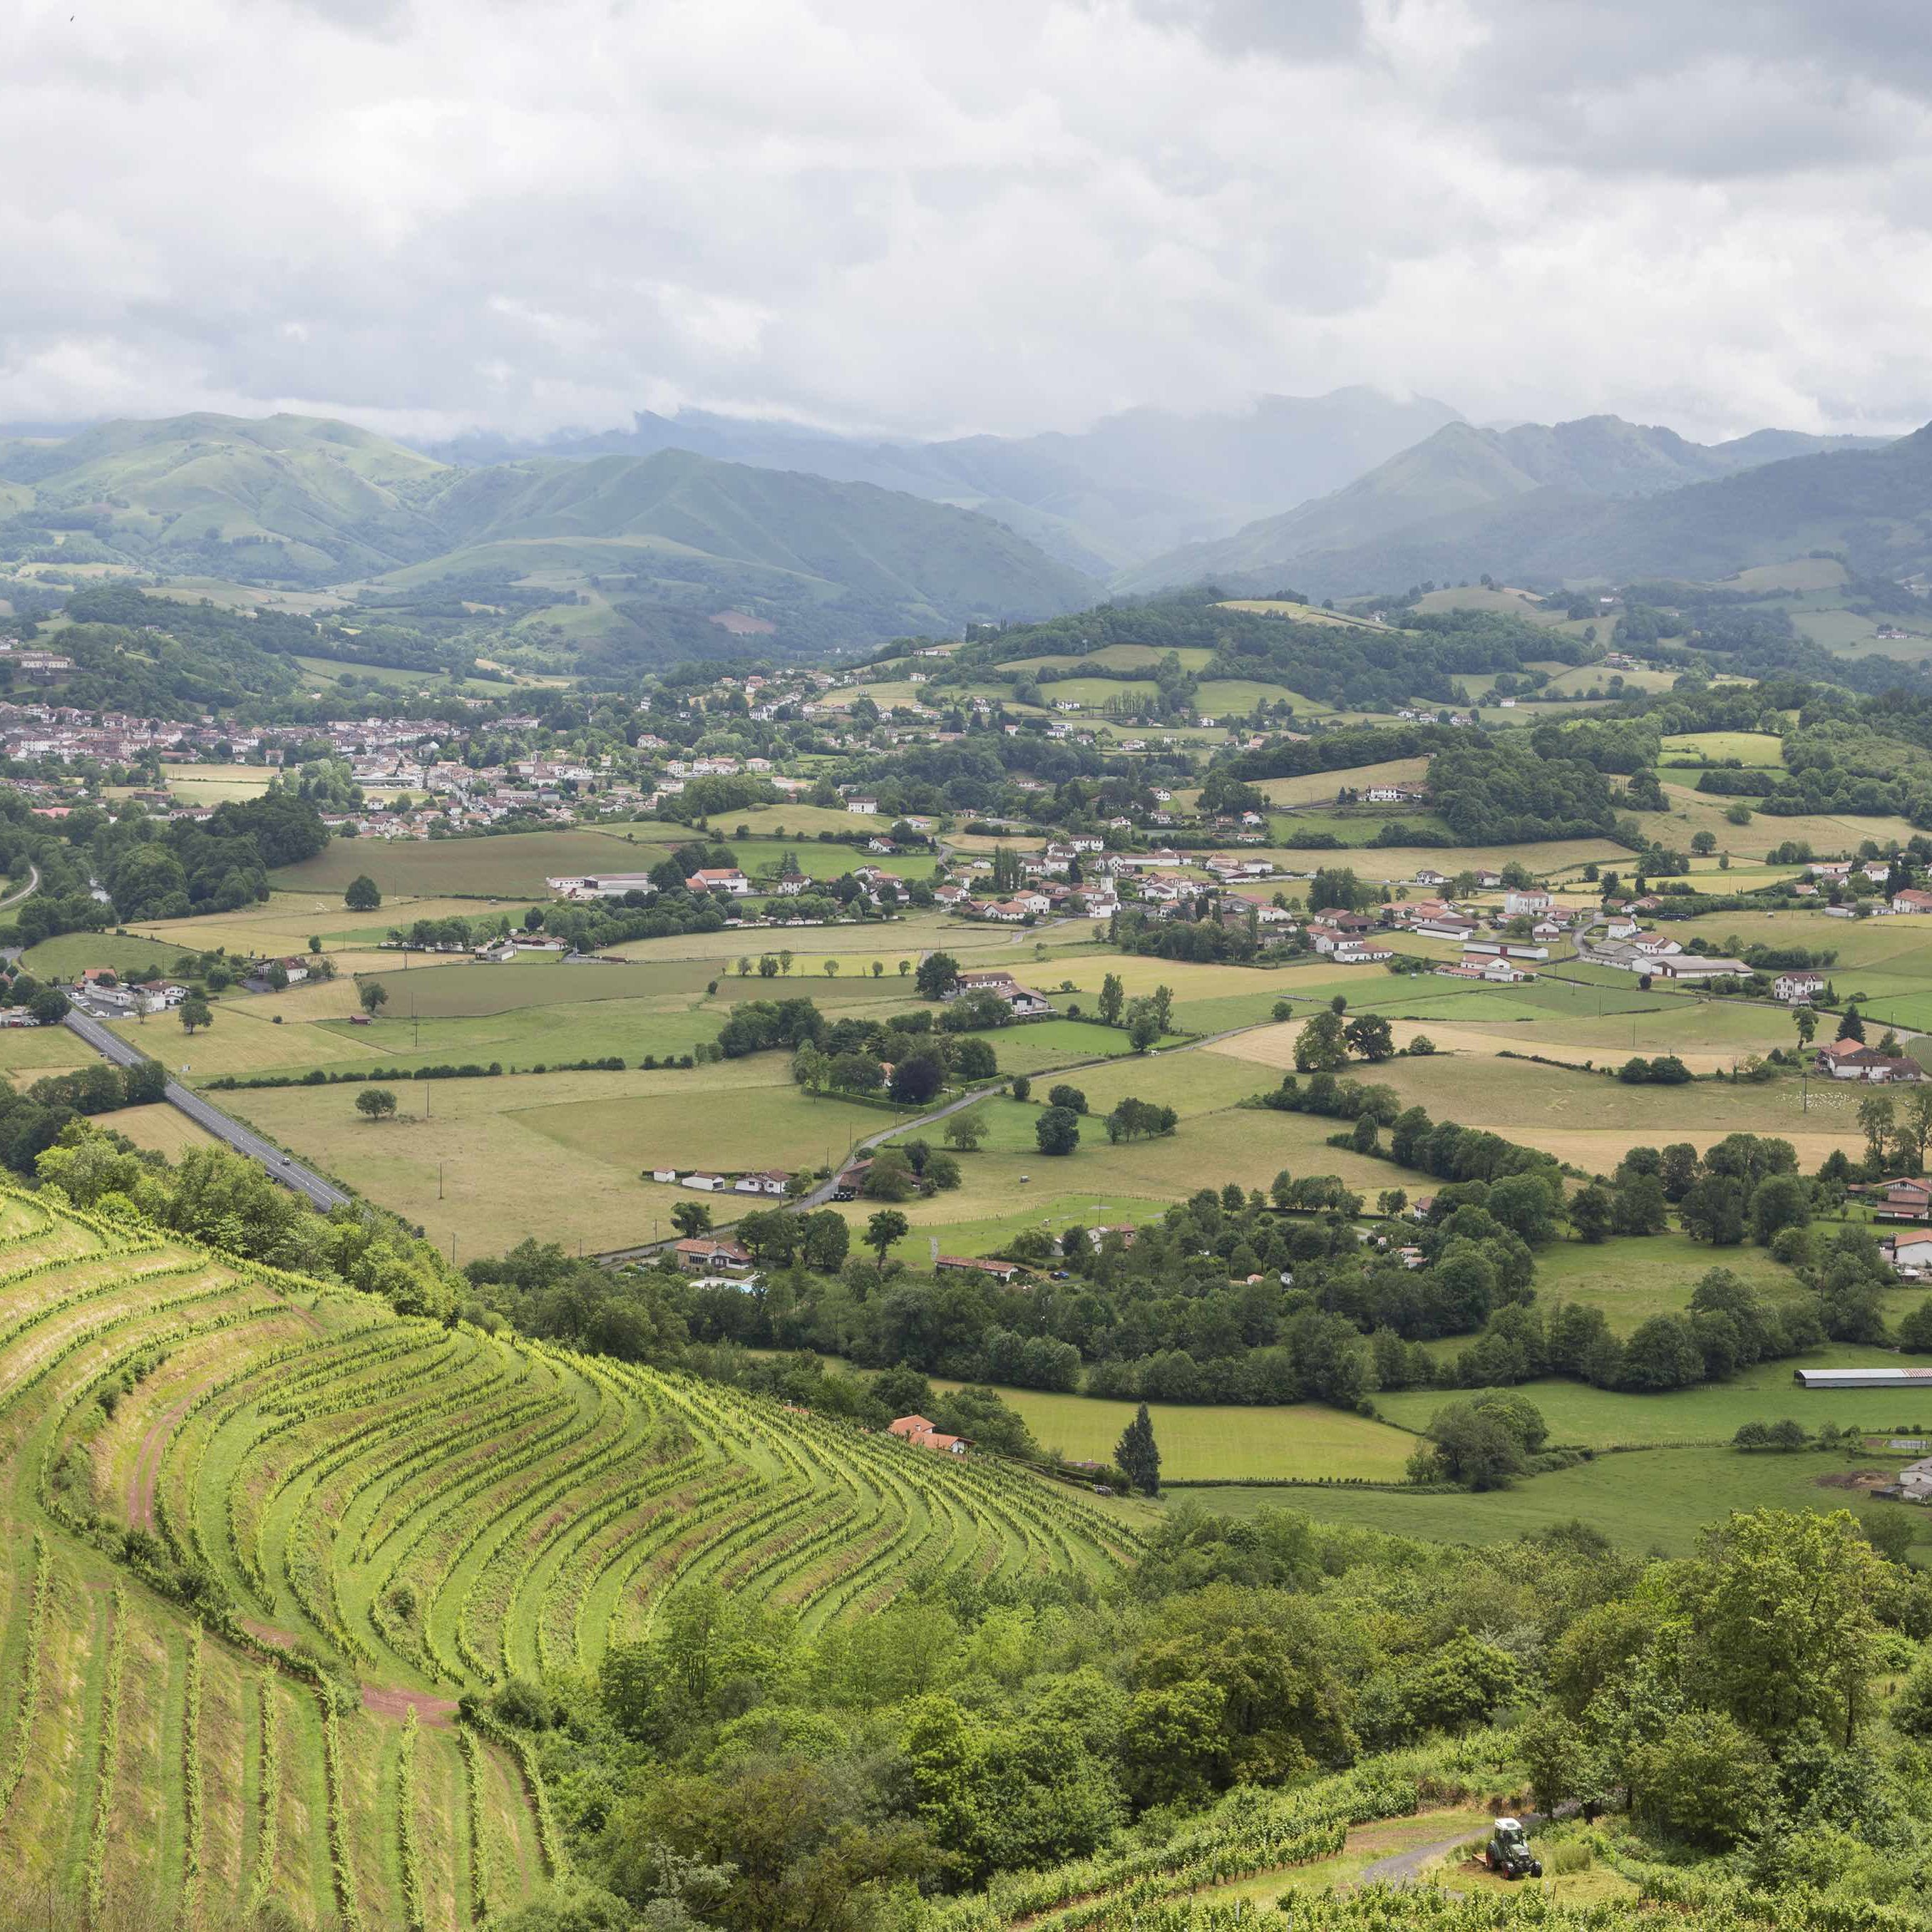 The beautiful scenery enjoyed with the Pyrenees Mountains seen in French Basque Country as seen on UpRooted